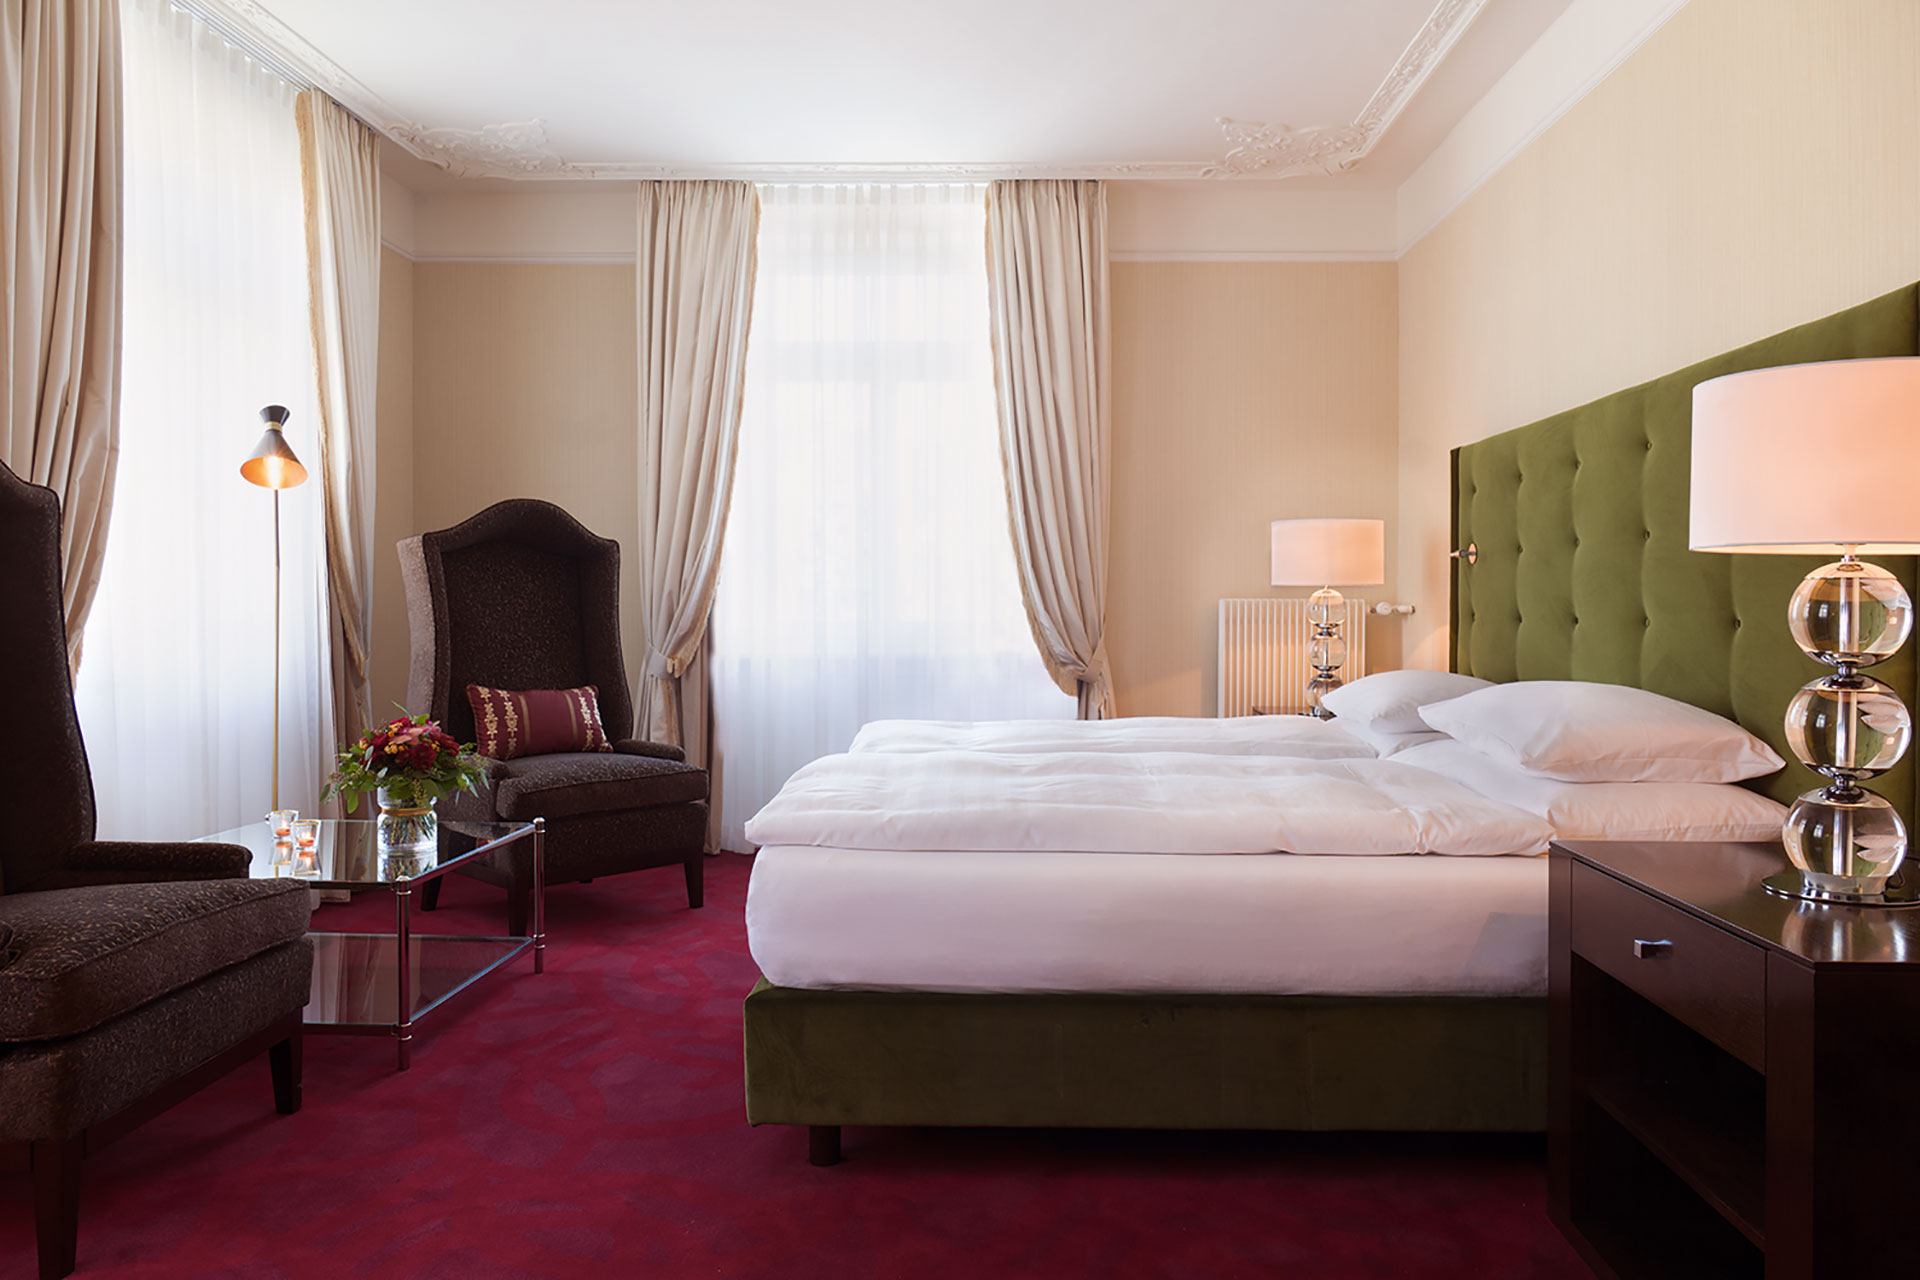 An interior shot of a one bed suite. The bed is donned in white linens and the headboard is a dark green. The carpet is red and the two high back chairs in each corner of the room are brown. There are two bedside tables with lamps on top of them.